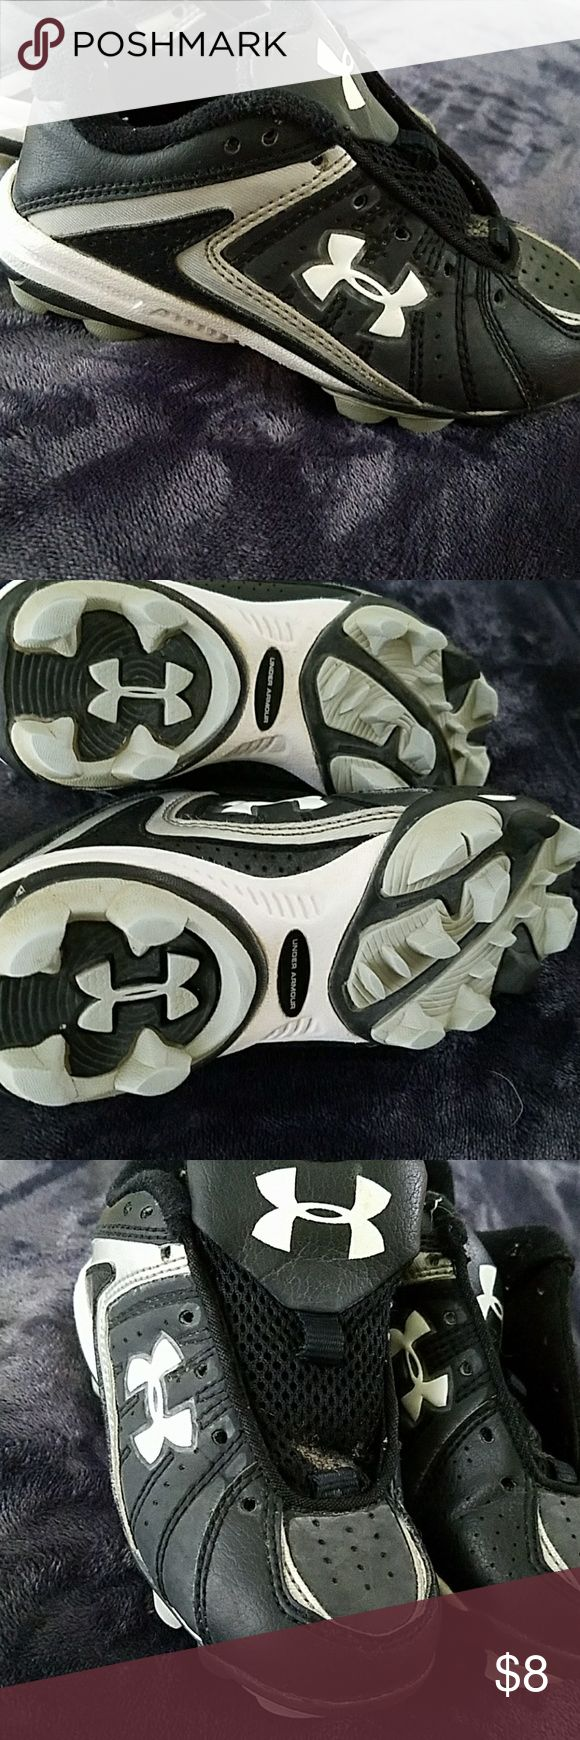 Under Armour Cleats Size 10 (Toddler Size) Gently used pair of Under Armour cleats WITHOUT laces with a little dirt in the lower portion of the tongues of both shoes (in spite of being cleaned). There is minimal signs of wear otherwise as they were only used two seasons at the most. I posted pictures of the minor noticeable wear. These would be great for a little tball player! Under Armour Shoes Sneakers